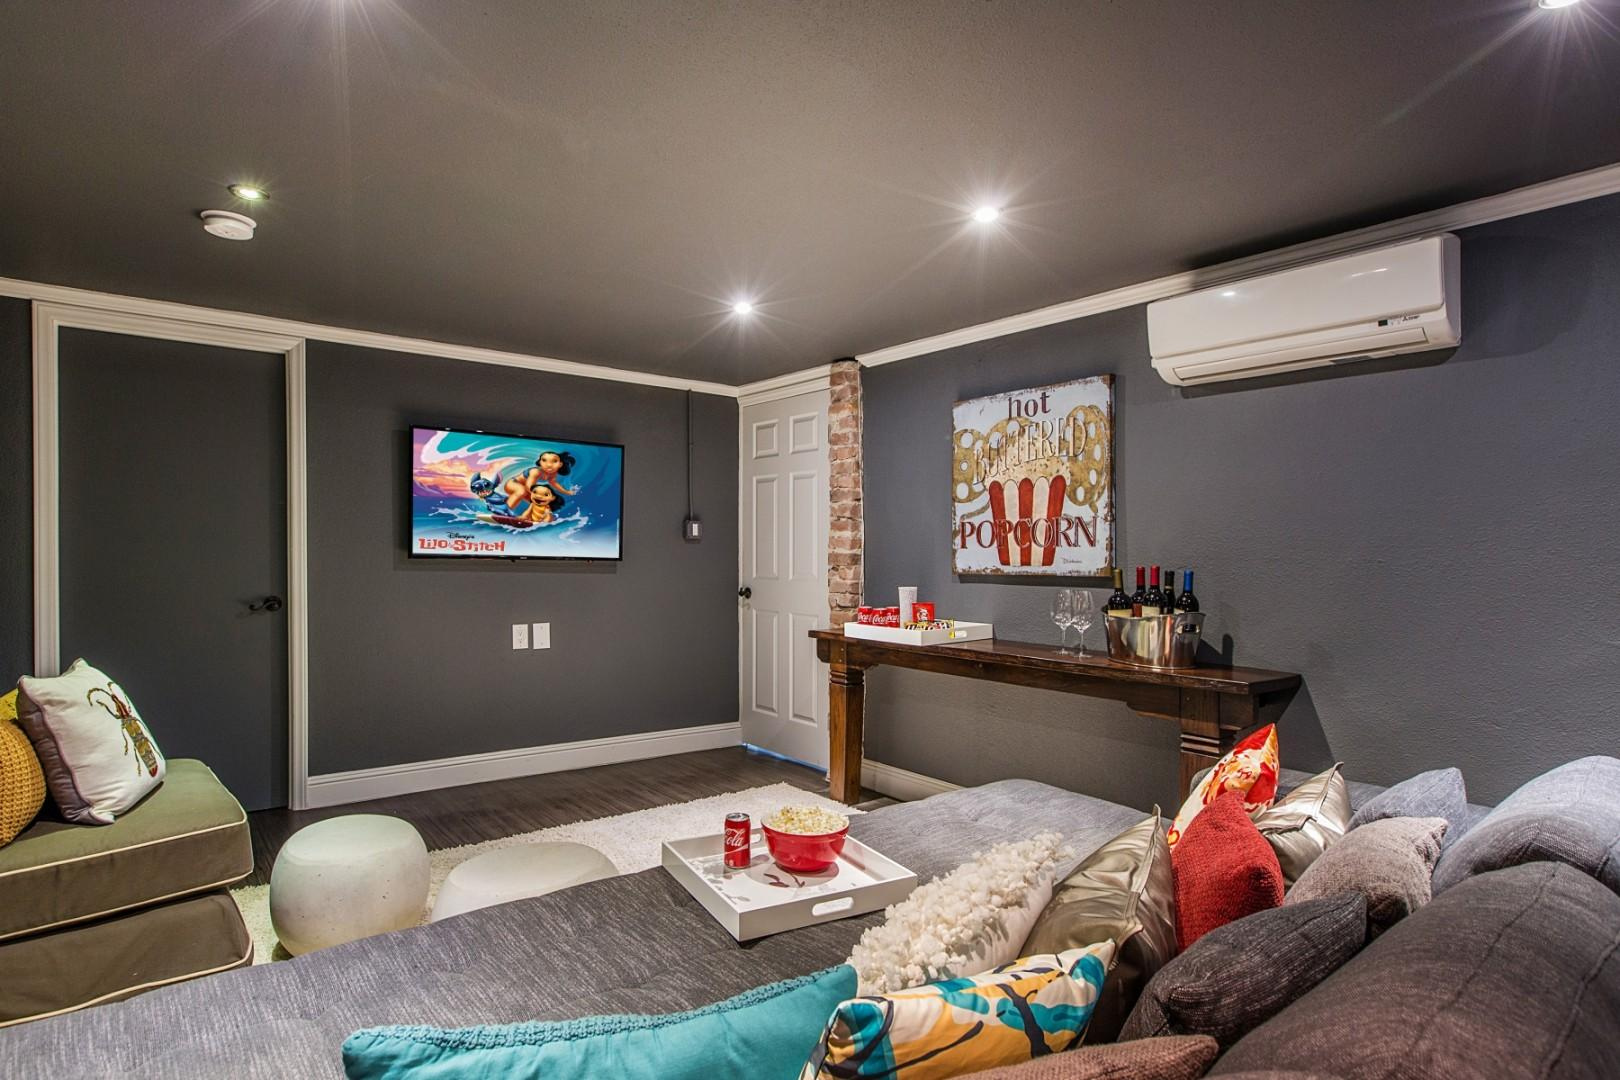 Media room. What better way to end the day than to snuggle up together to watch one of your favorite movies?